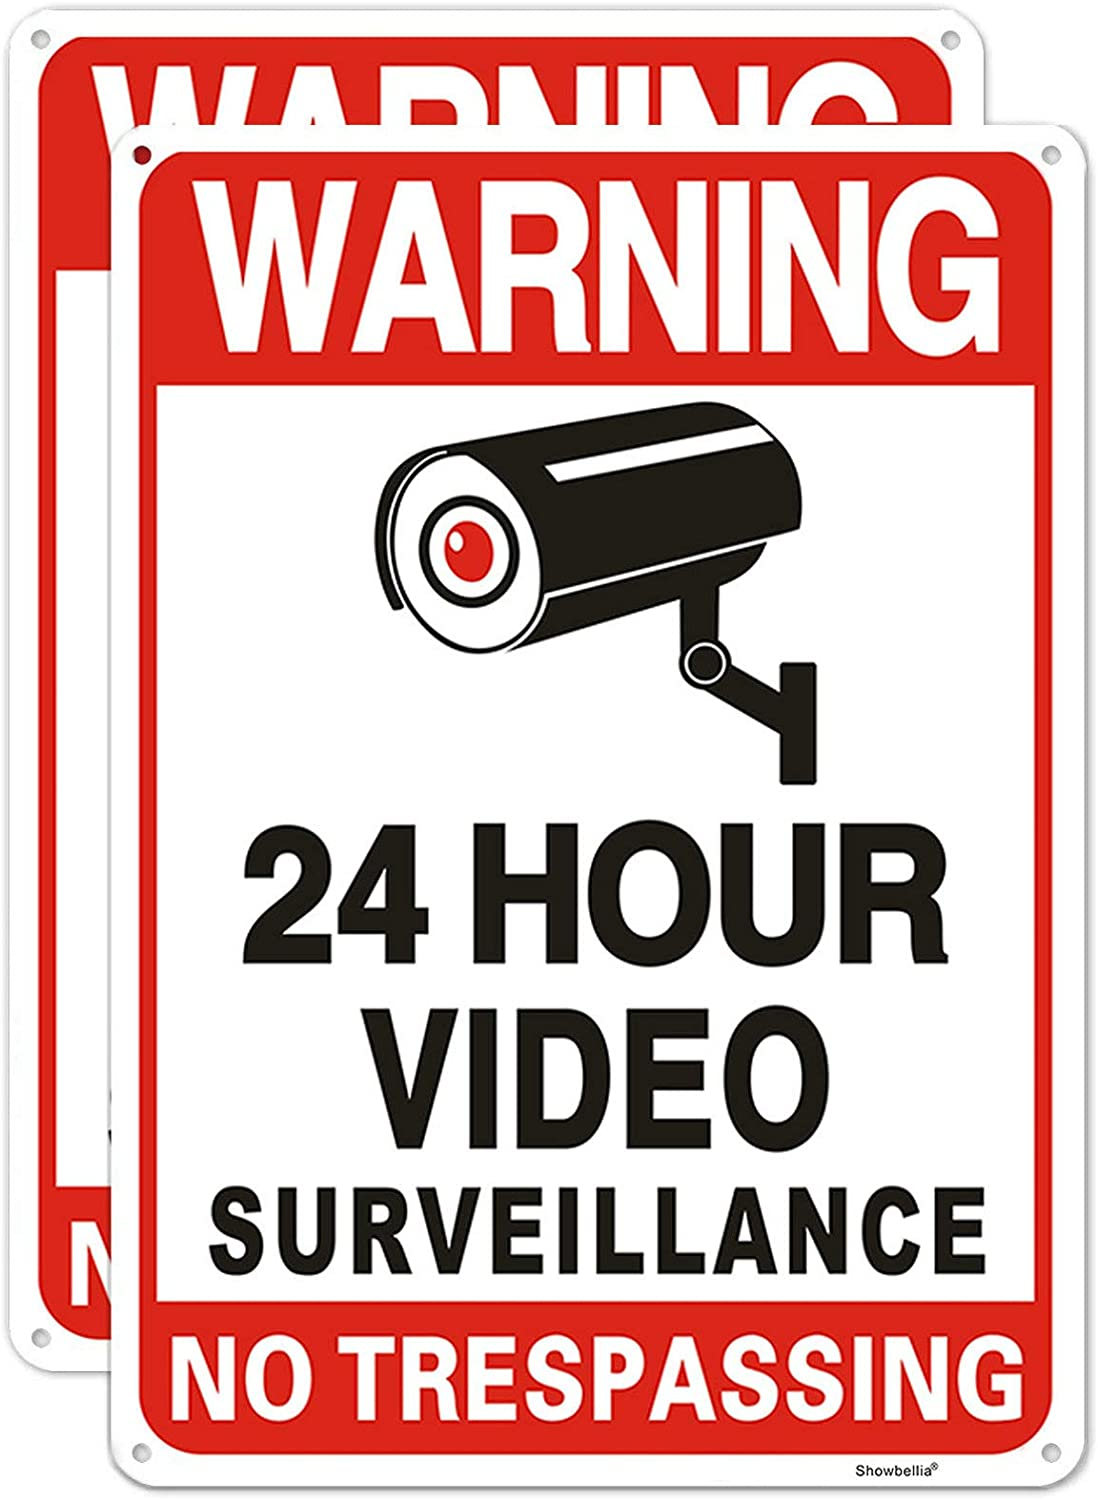 2 Pack No Trespassing Sign, 24 Hour Video Surveillance Signs, Rust-free Aluminum Metal Reflective Sign, Fake Security Camera Sign, Indoor Or Outdoor Use for Home Yard Business CCTV (10 x 7 Inches)